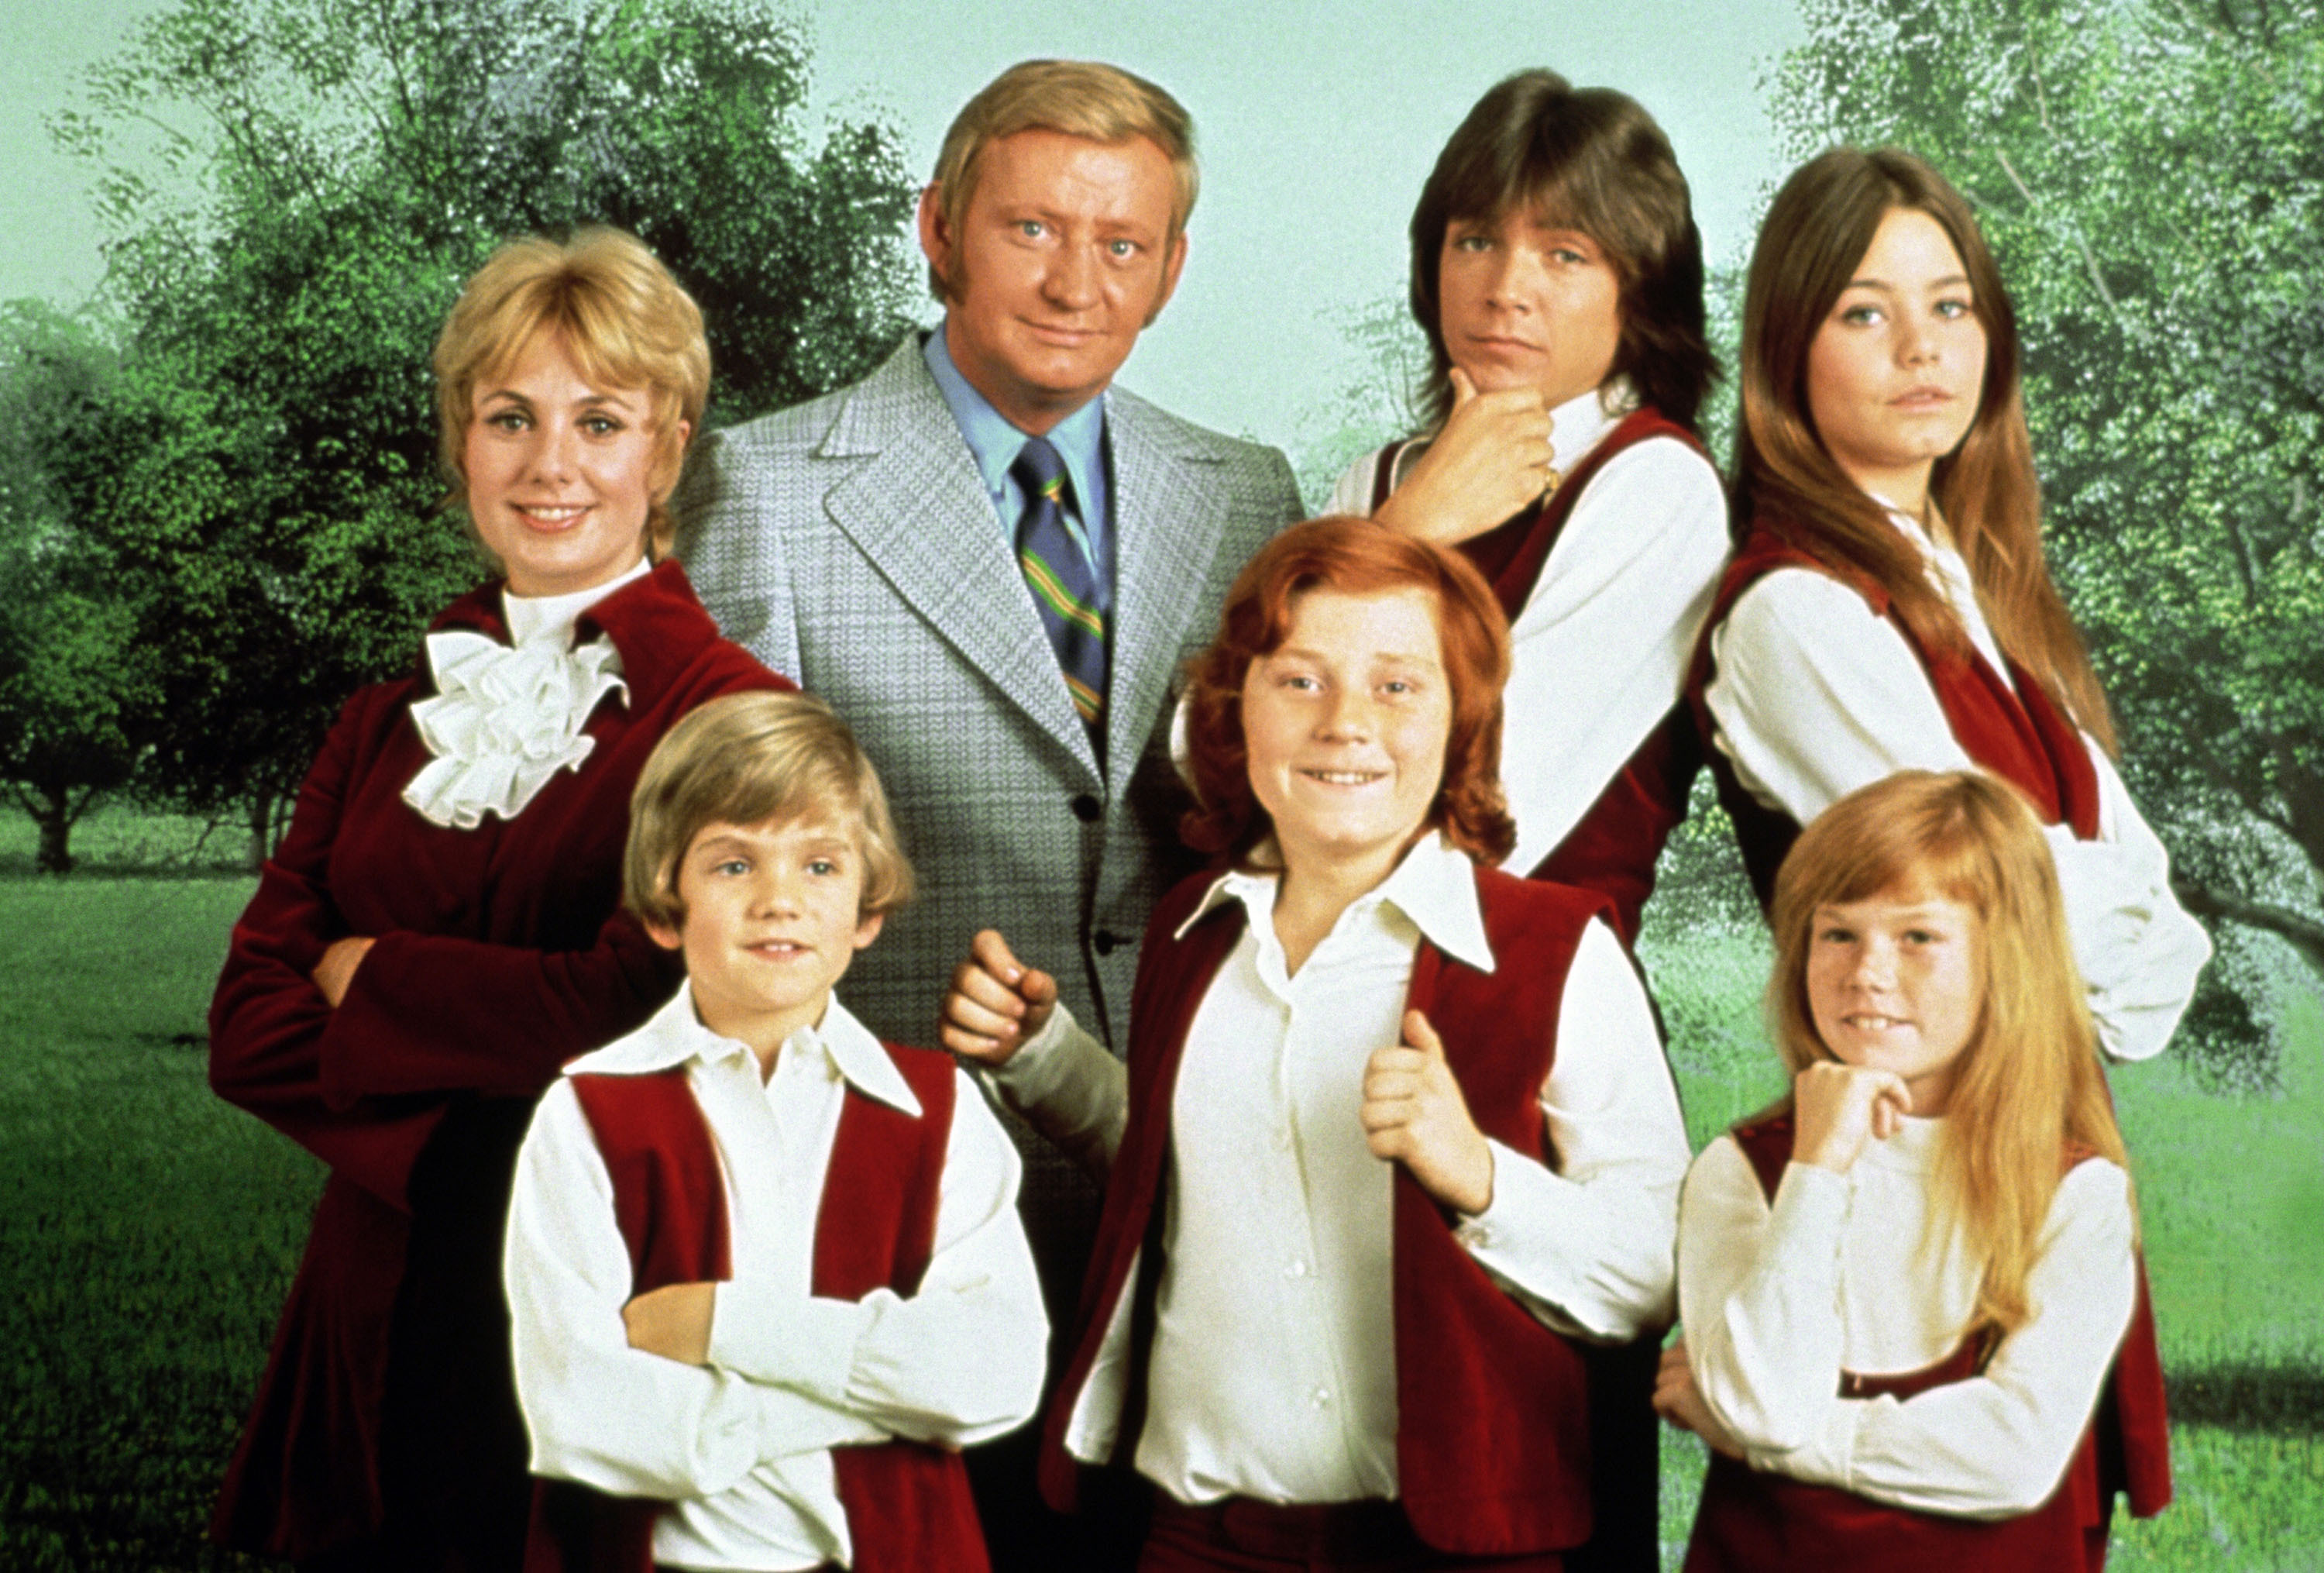 (top row) Shirley Jones, Dave Madden, David Cassidy, Susan Dey; (front row) Brian Forster, Danny Bonaduce, Suzanne Crough  The Partridge Family (ABC)  1970 - 1974  When: 13 Aug 1970 Credit: WENN.com  **WENN does not claim any ownership including but not limited to Copyright or License in the attached material. Fees charged by WENN are for WENN's services only, and do not, nor are they intended to, convey to the user any ownership of Copyright or License in the material. By publishing this material you expressly agree to indemnify and to hold WENN and its directors, shareholders and employees harmless from any loss, claims, damages, demands, expenses (including legal fees), or any causes of action or allegation against WENN arising out of or connected in any way with publication of the material.**